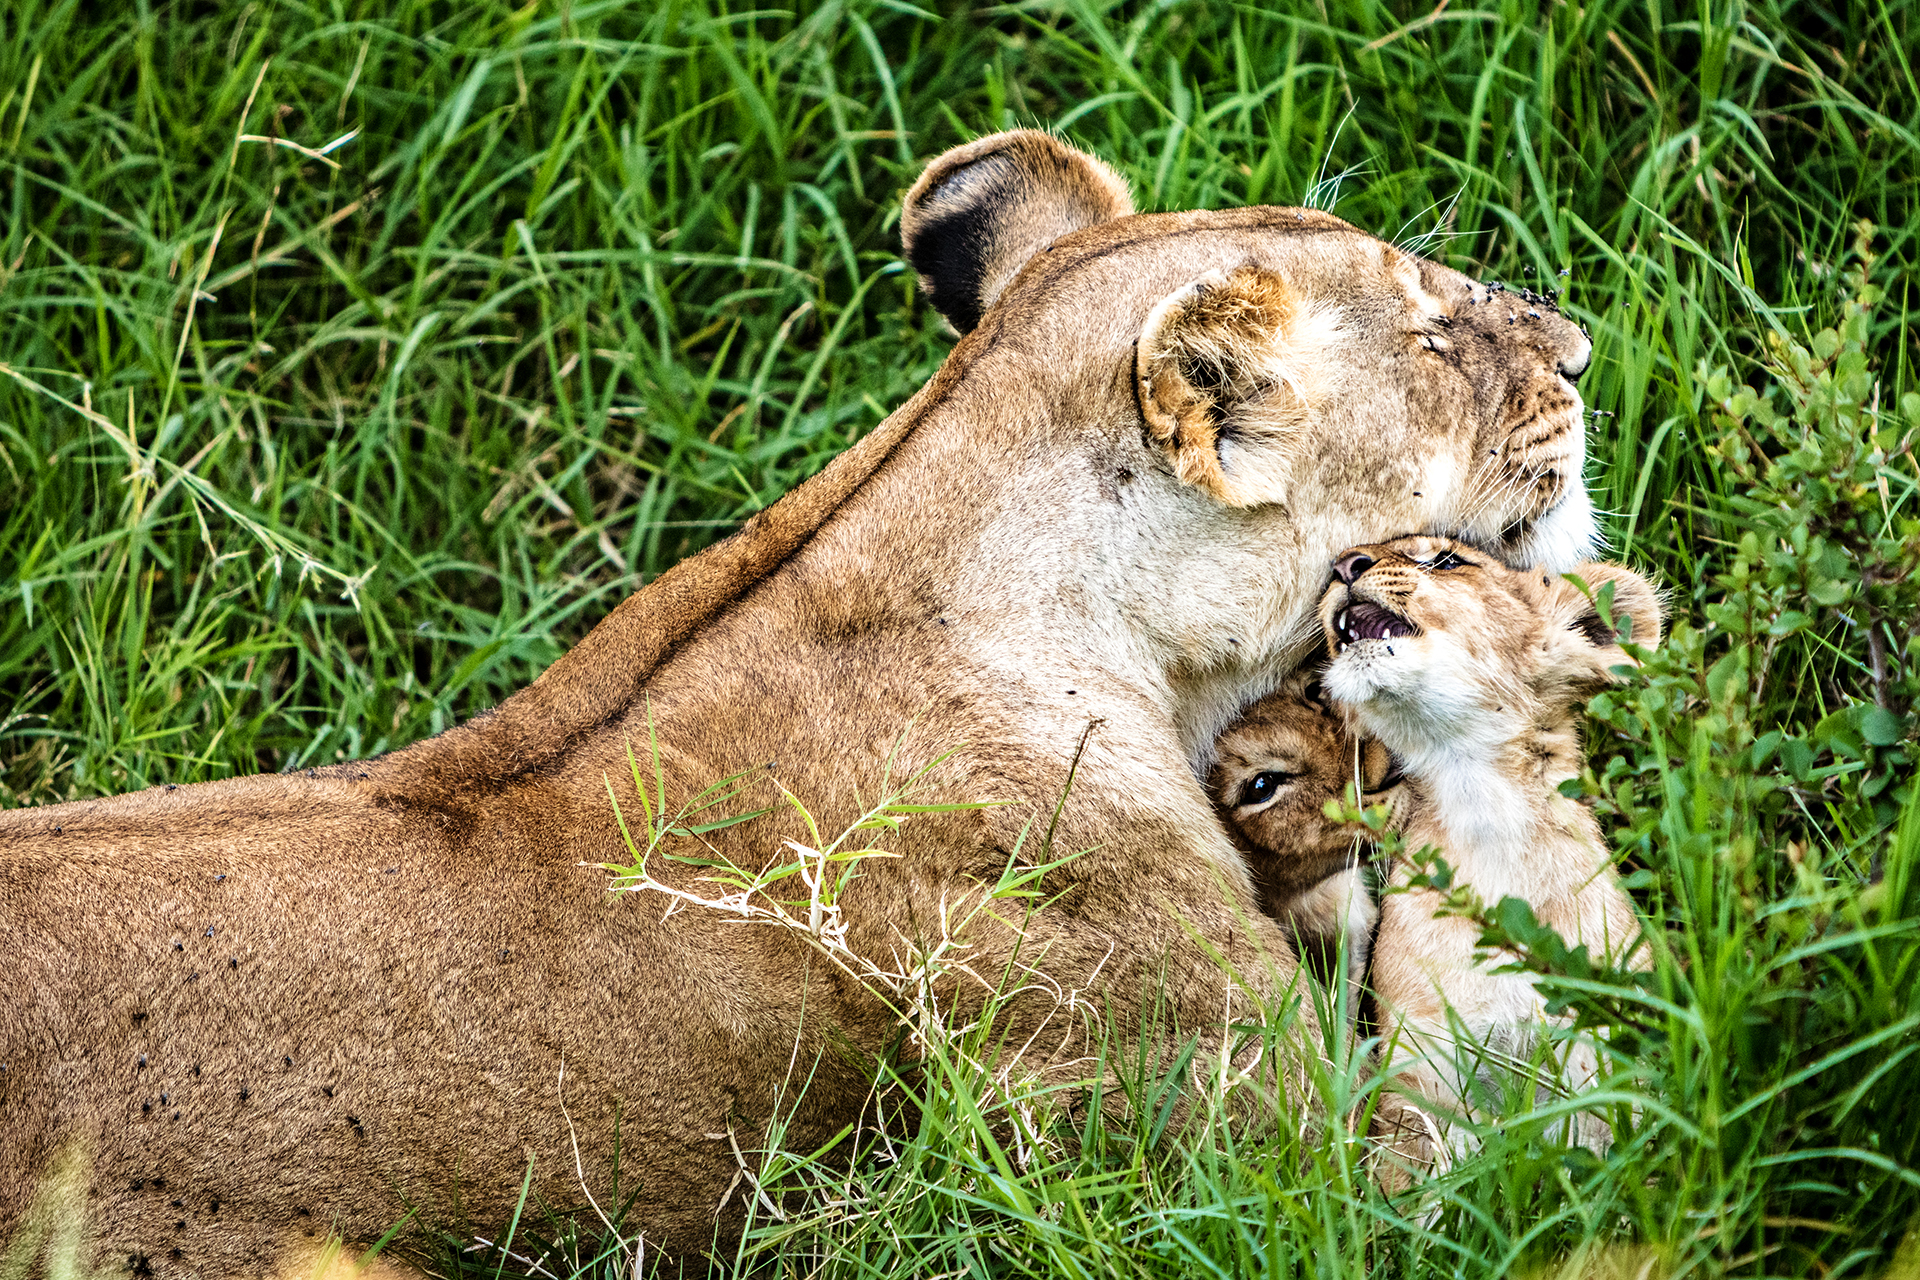 Affectionate Lioness With Playful Baby Cubs.jpg